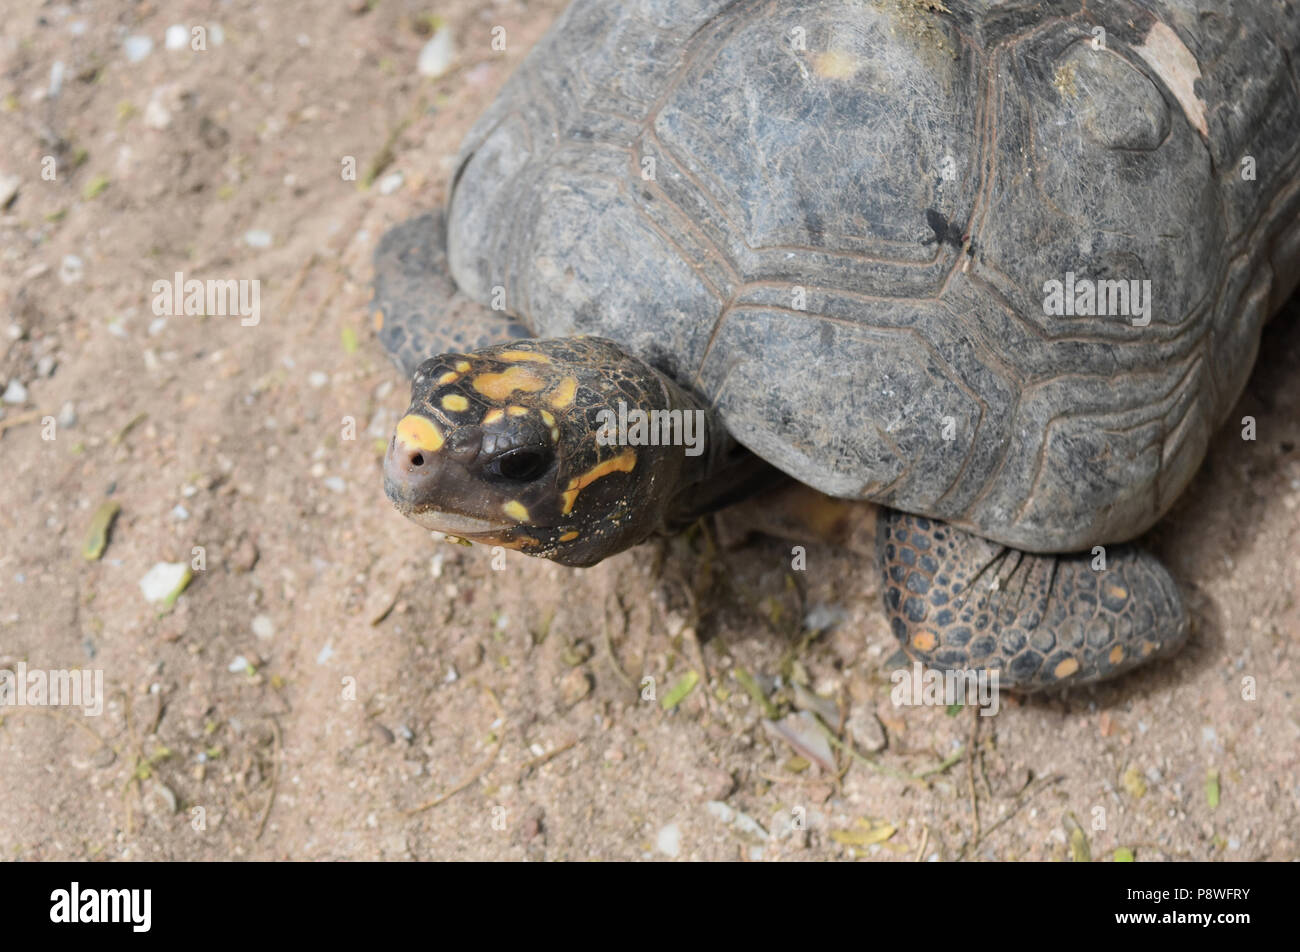 cute turtle stock photos cute turtle stock images alamy